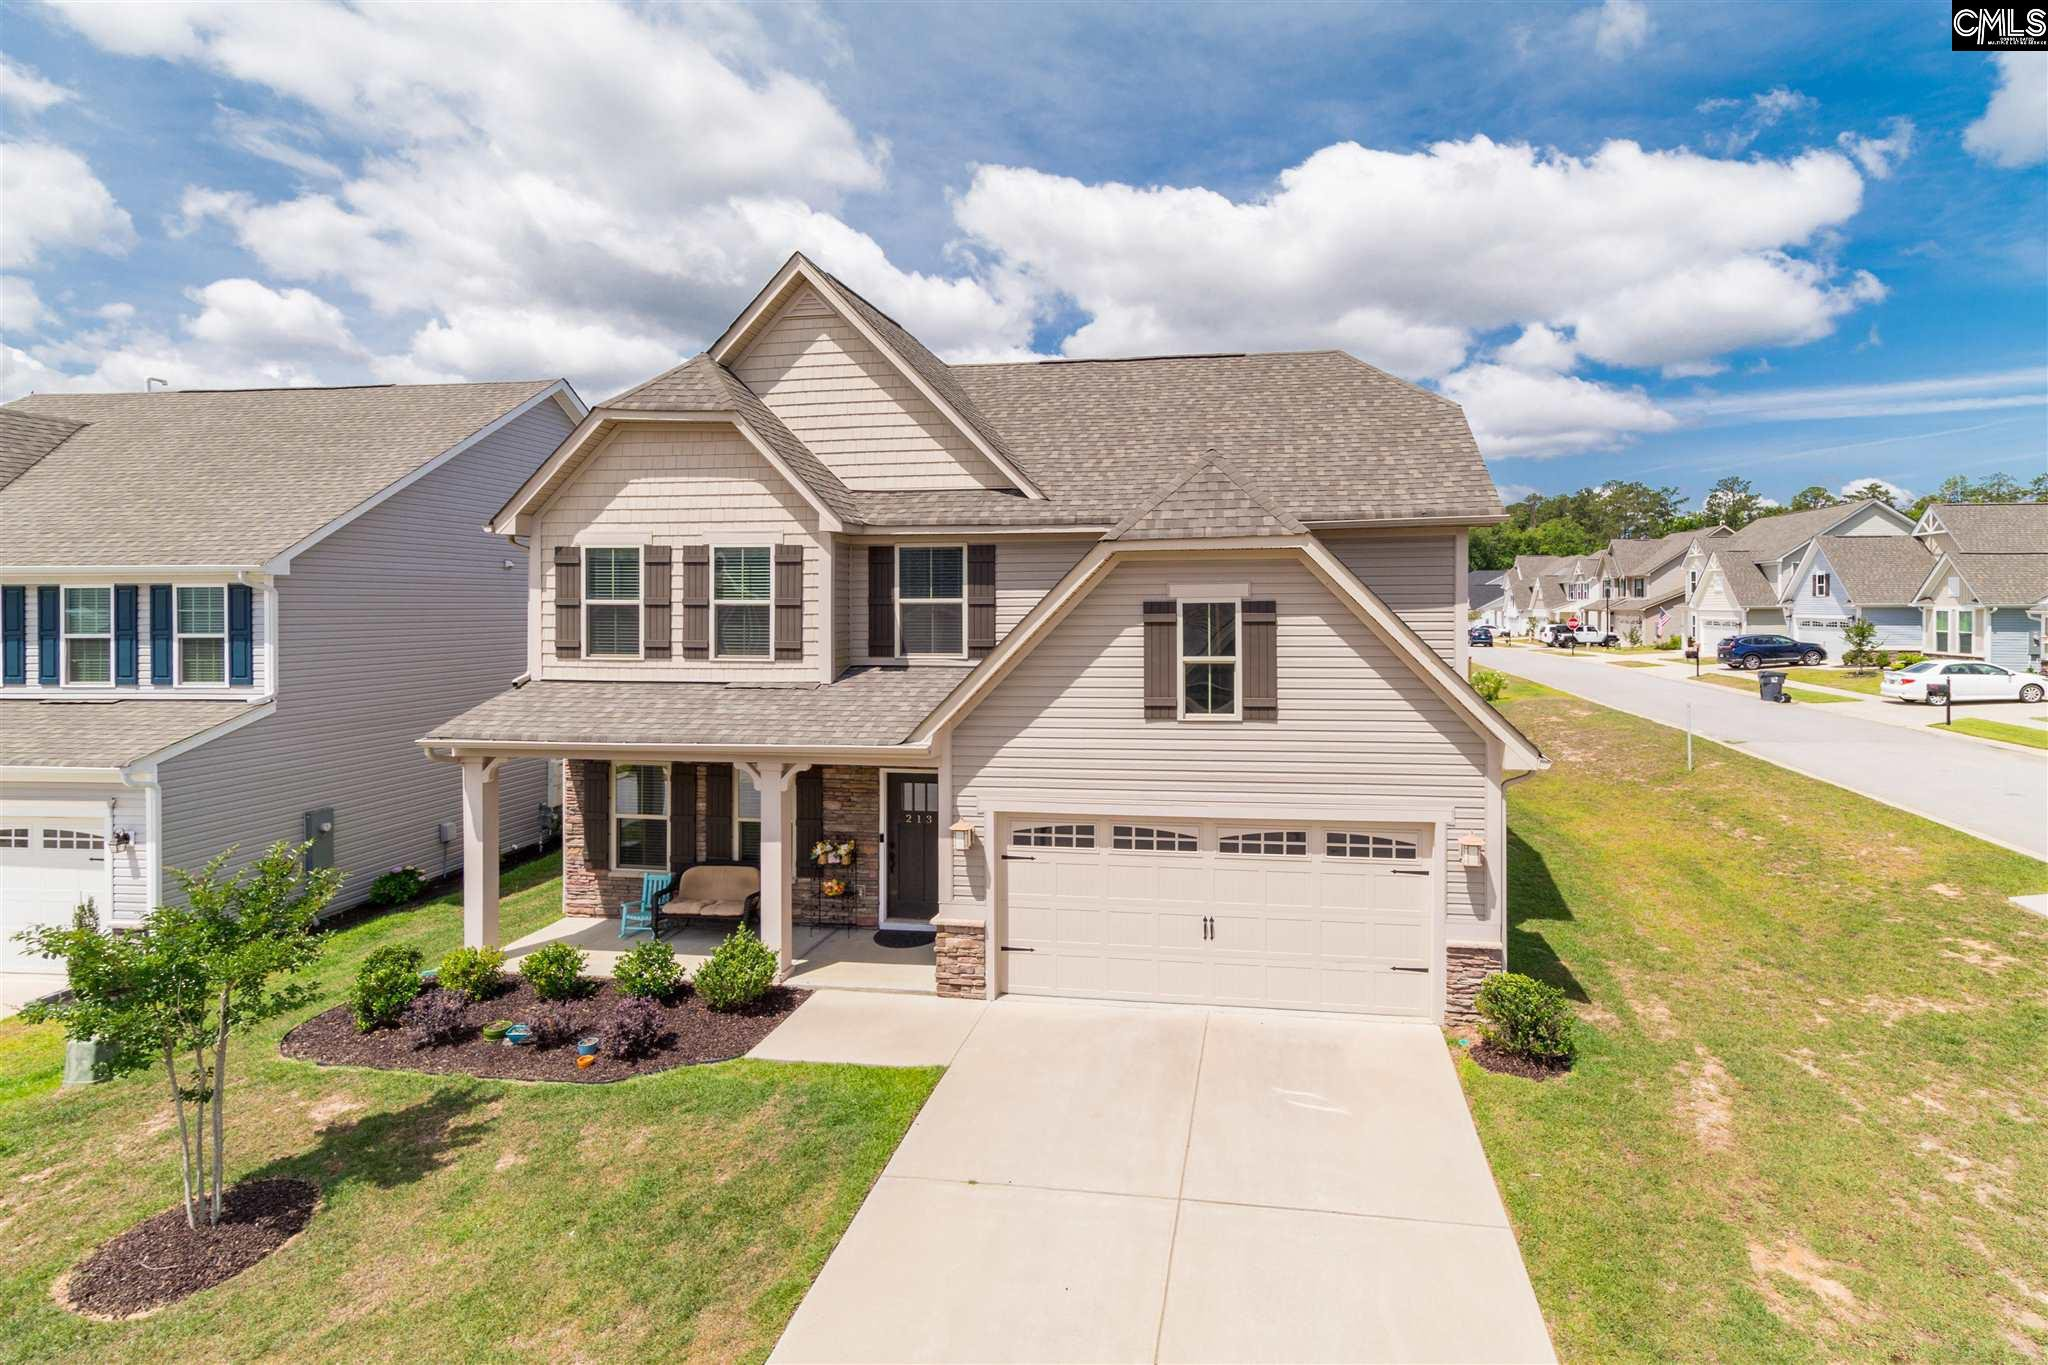 New Homes for Sale in Columbia SC